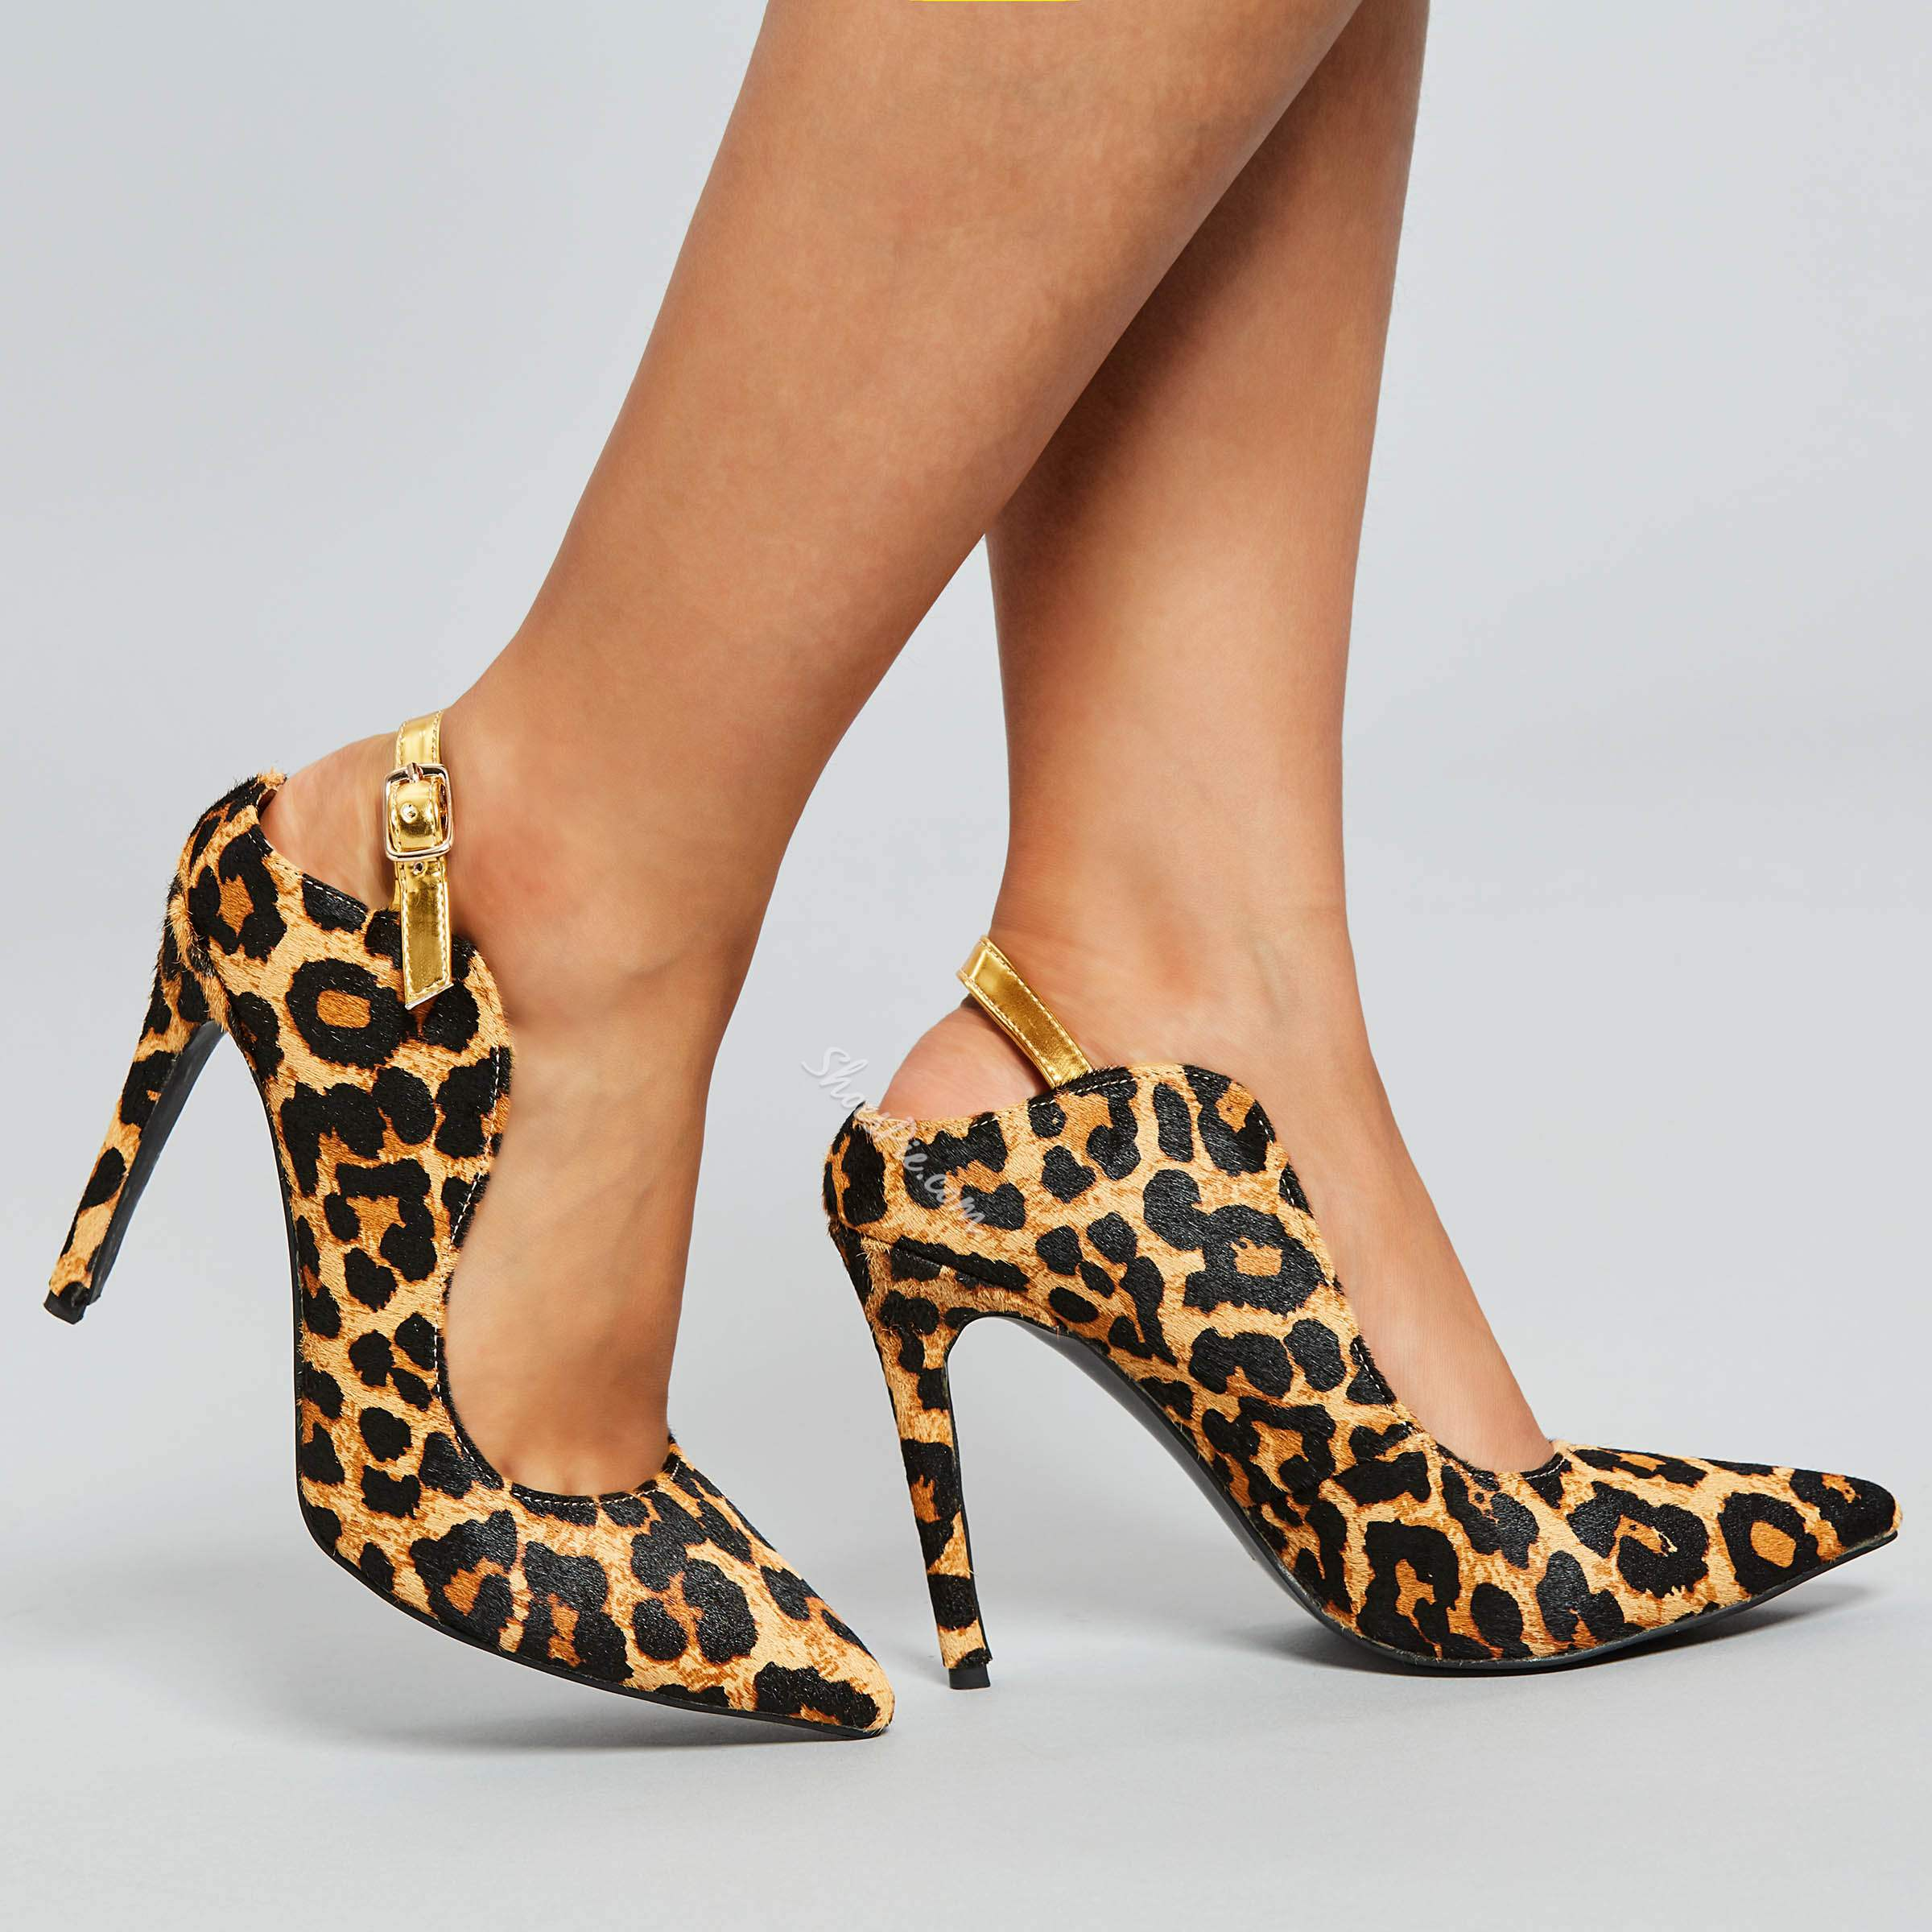 Shoespie Leopard Print Stiletto Heel Pumps